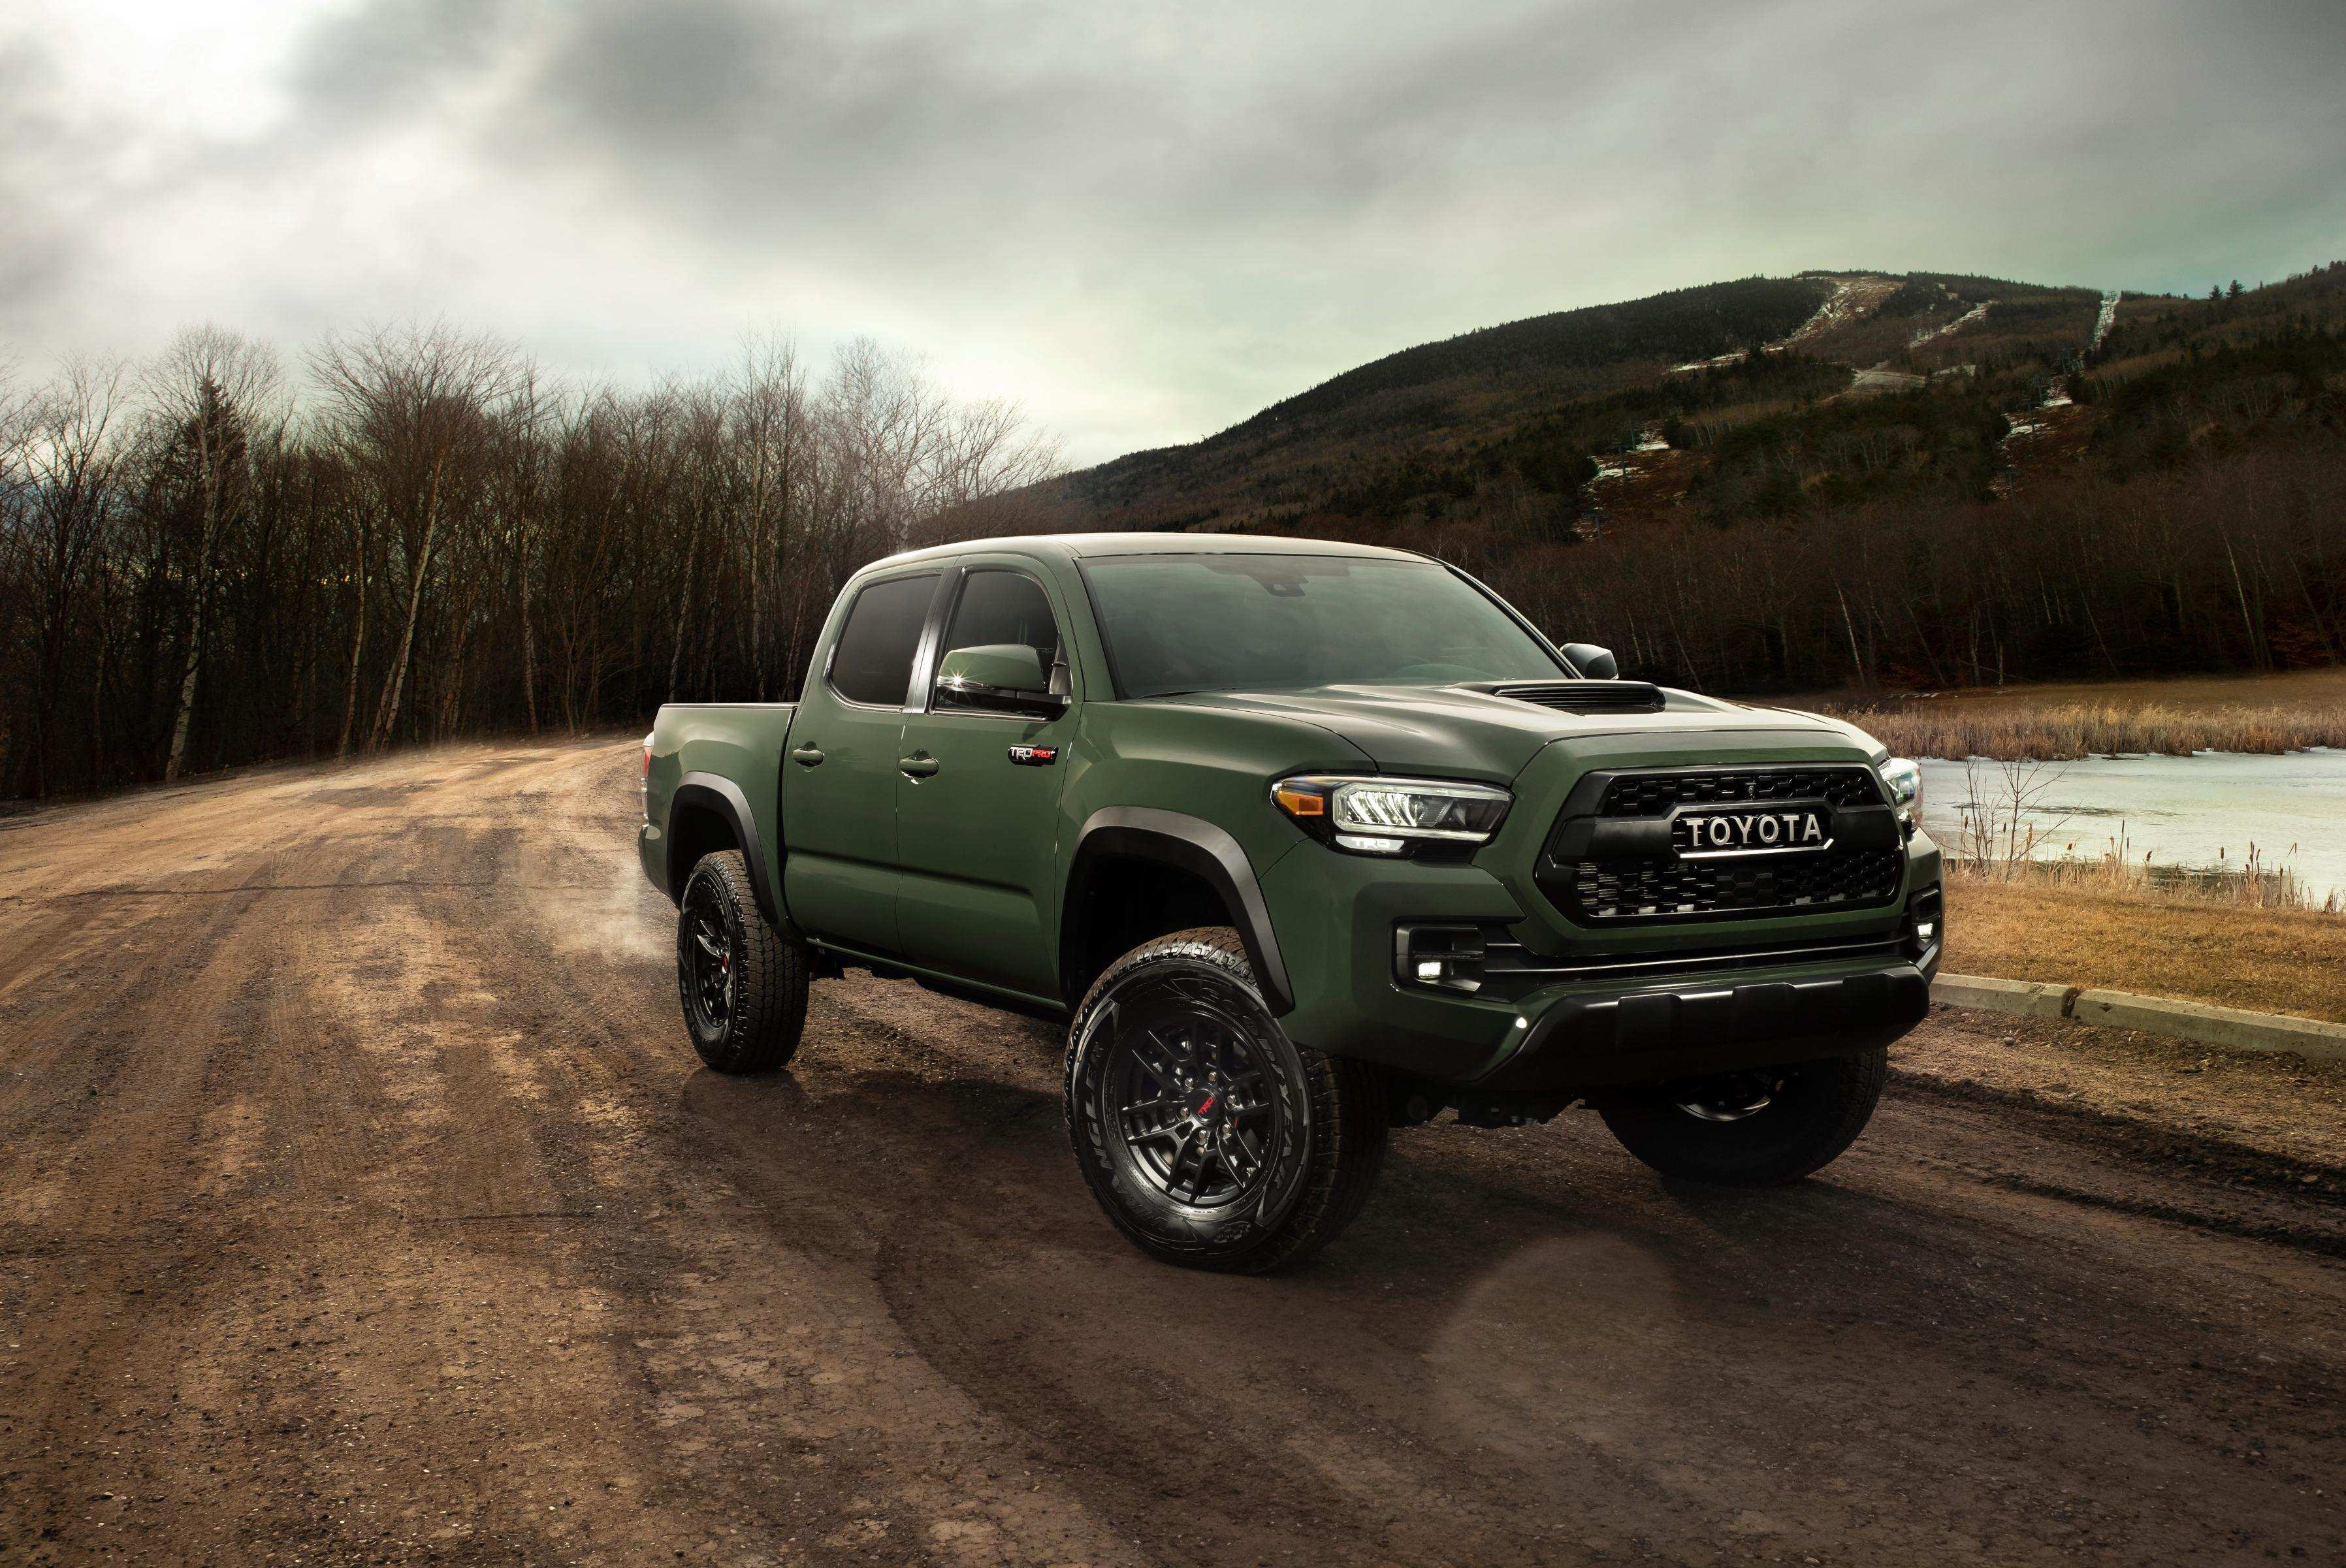 24 Best Toyota Tacoma 2020 Colors Configurations